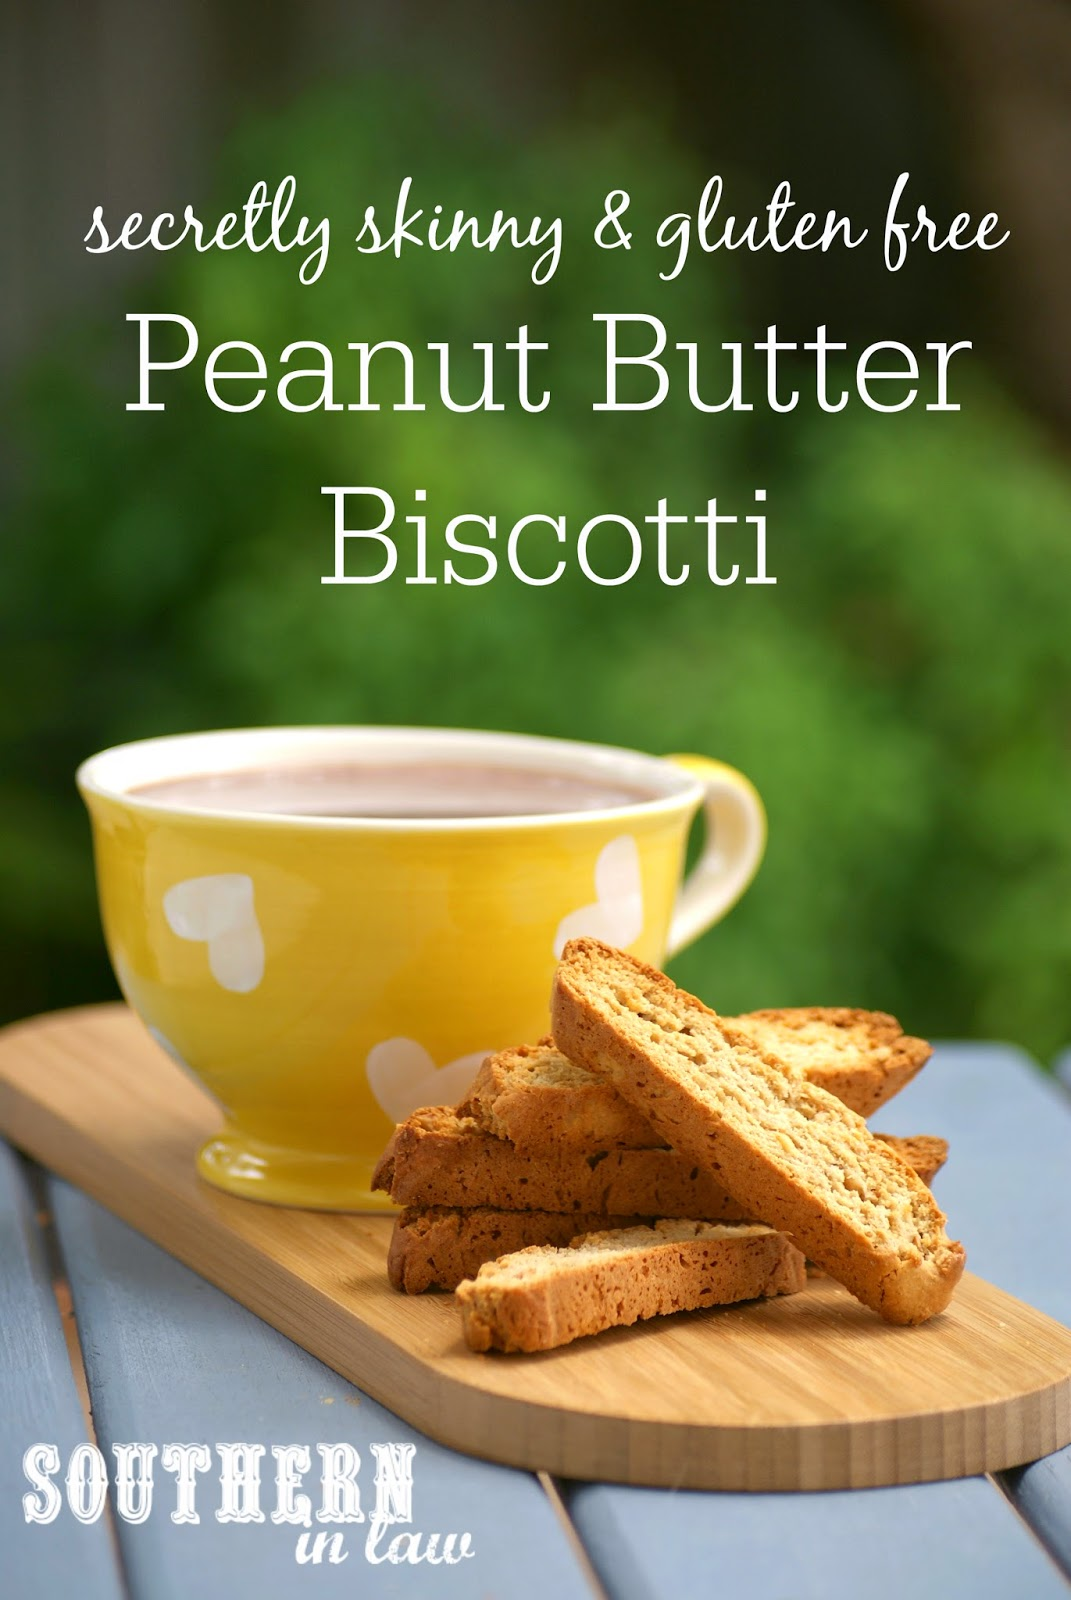 Secretly Skinny Peanut Butter Biscotti - low fat, low sugar, gluten free, clean eating friendly, healthy biscotti recipe